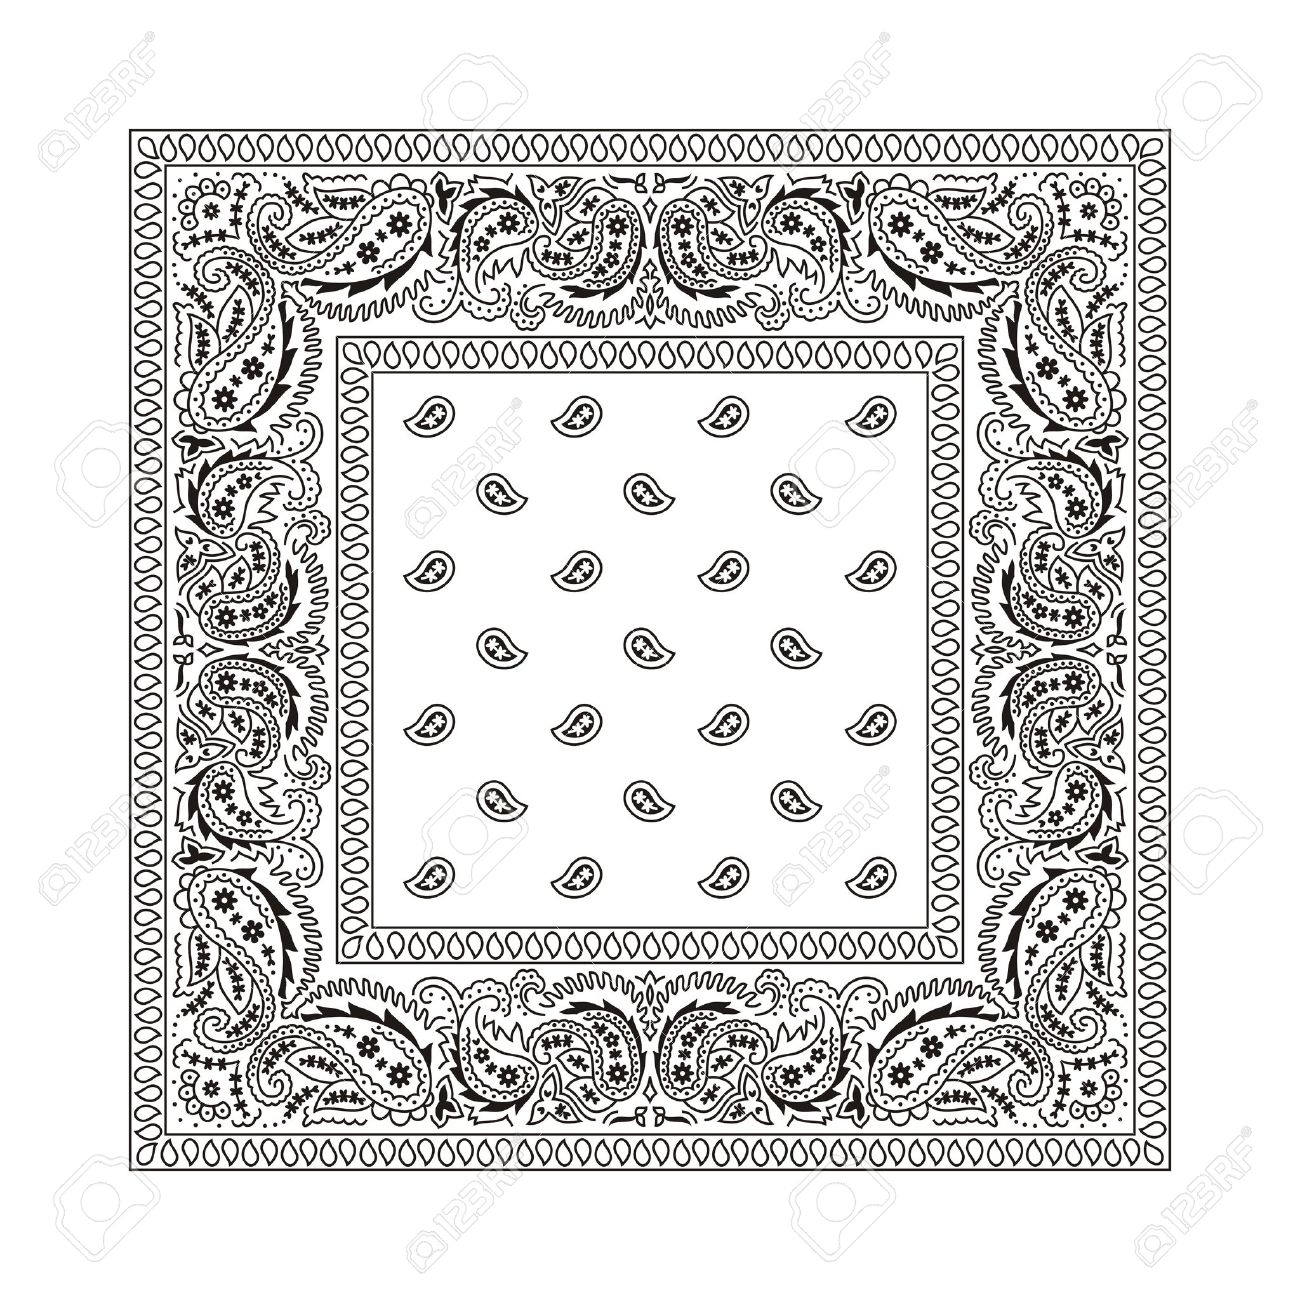 Bandana clipart black and white 5 » Clipart Station.